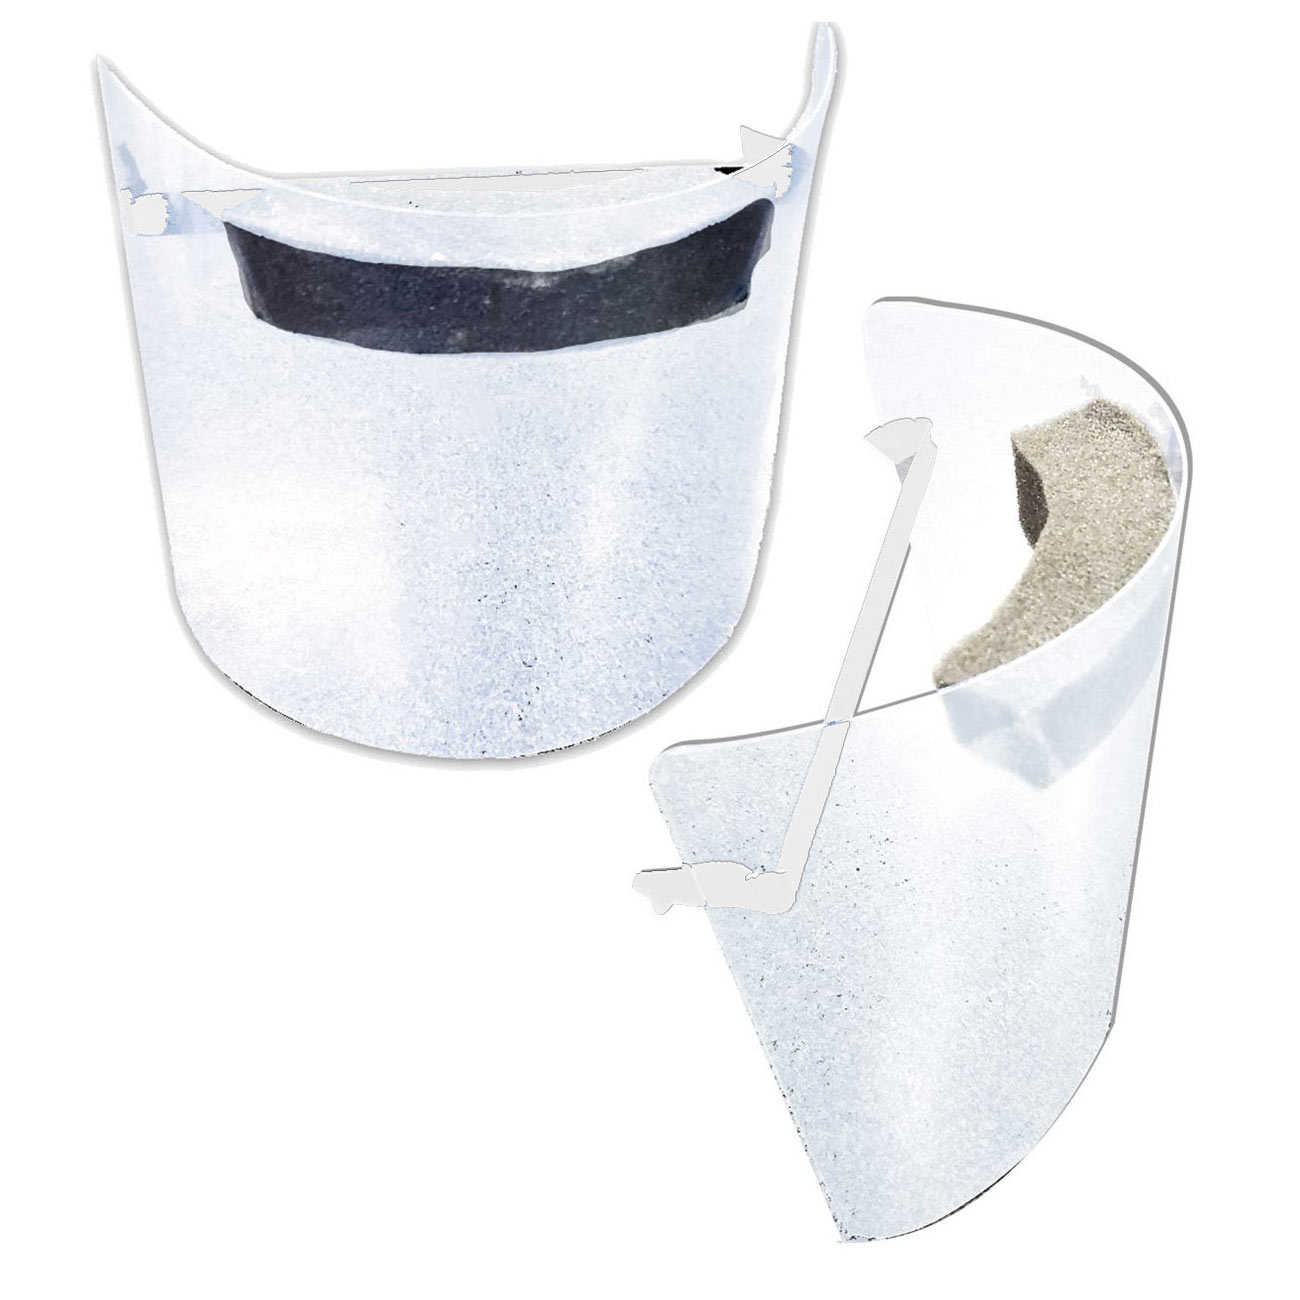 Pandemic Face Shield - Premium Durable Quality - Reusable - 2 Pack